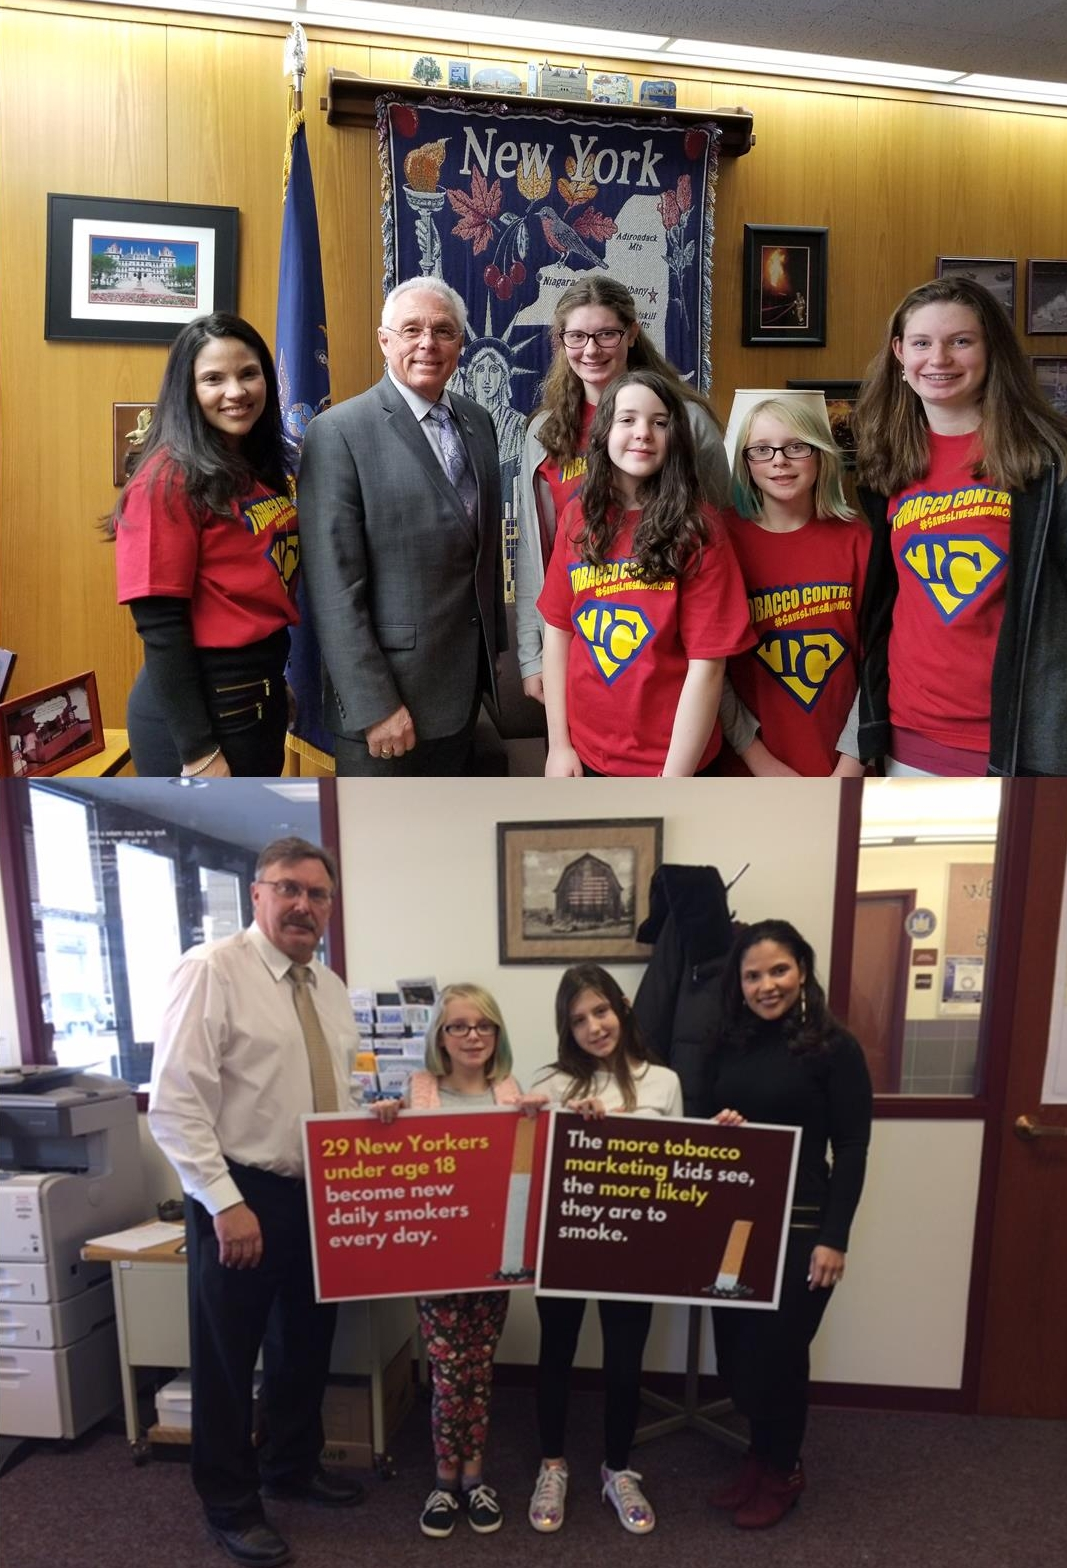 Cherry Valley-Springfield RC check in on Albany - On top, Assemblyman Clifford Crouch is paid a visit from RC youth on a mission to help bring on the first #tobaccofreegenerationBelow, RC youth meet with Assemblyman Brian Miller at his New Hartford office. It appears they have a few messages they wanted to bring to his attention.